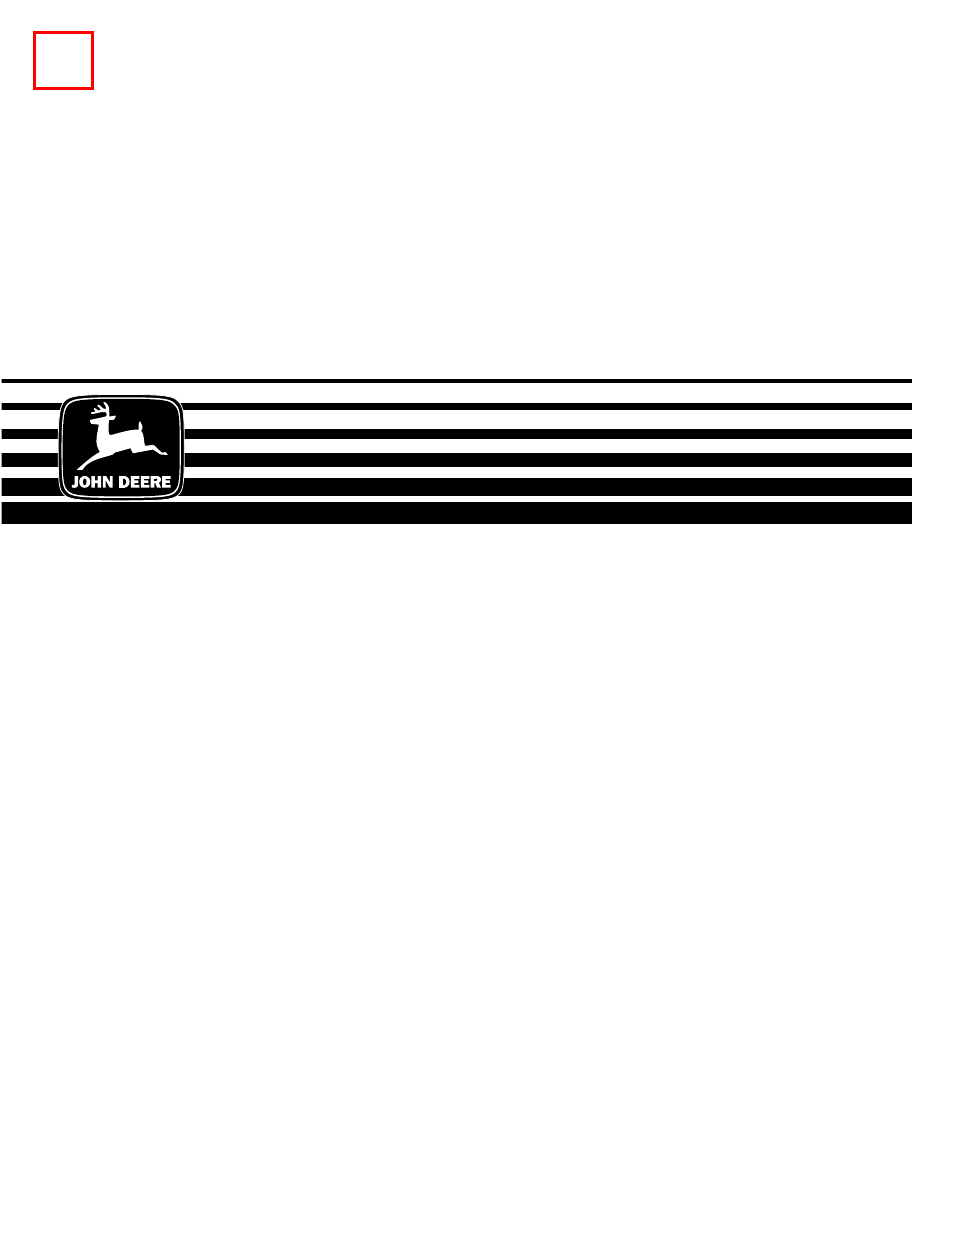 john deere stx38 page1 stx38 wiring diagram pdf stx38 wiring diagram pdf at eliteediting.co